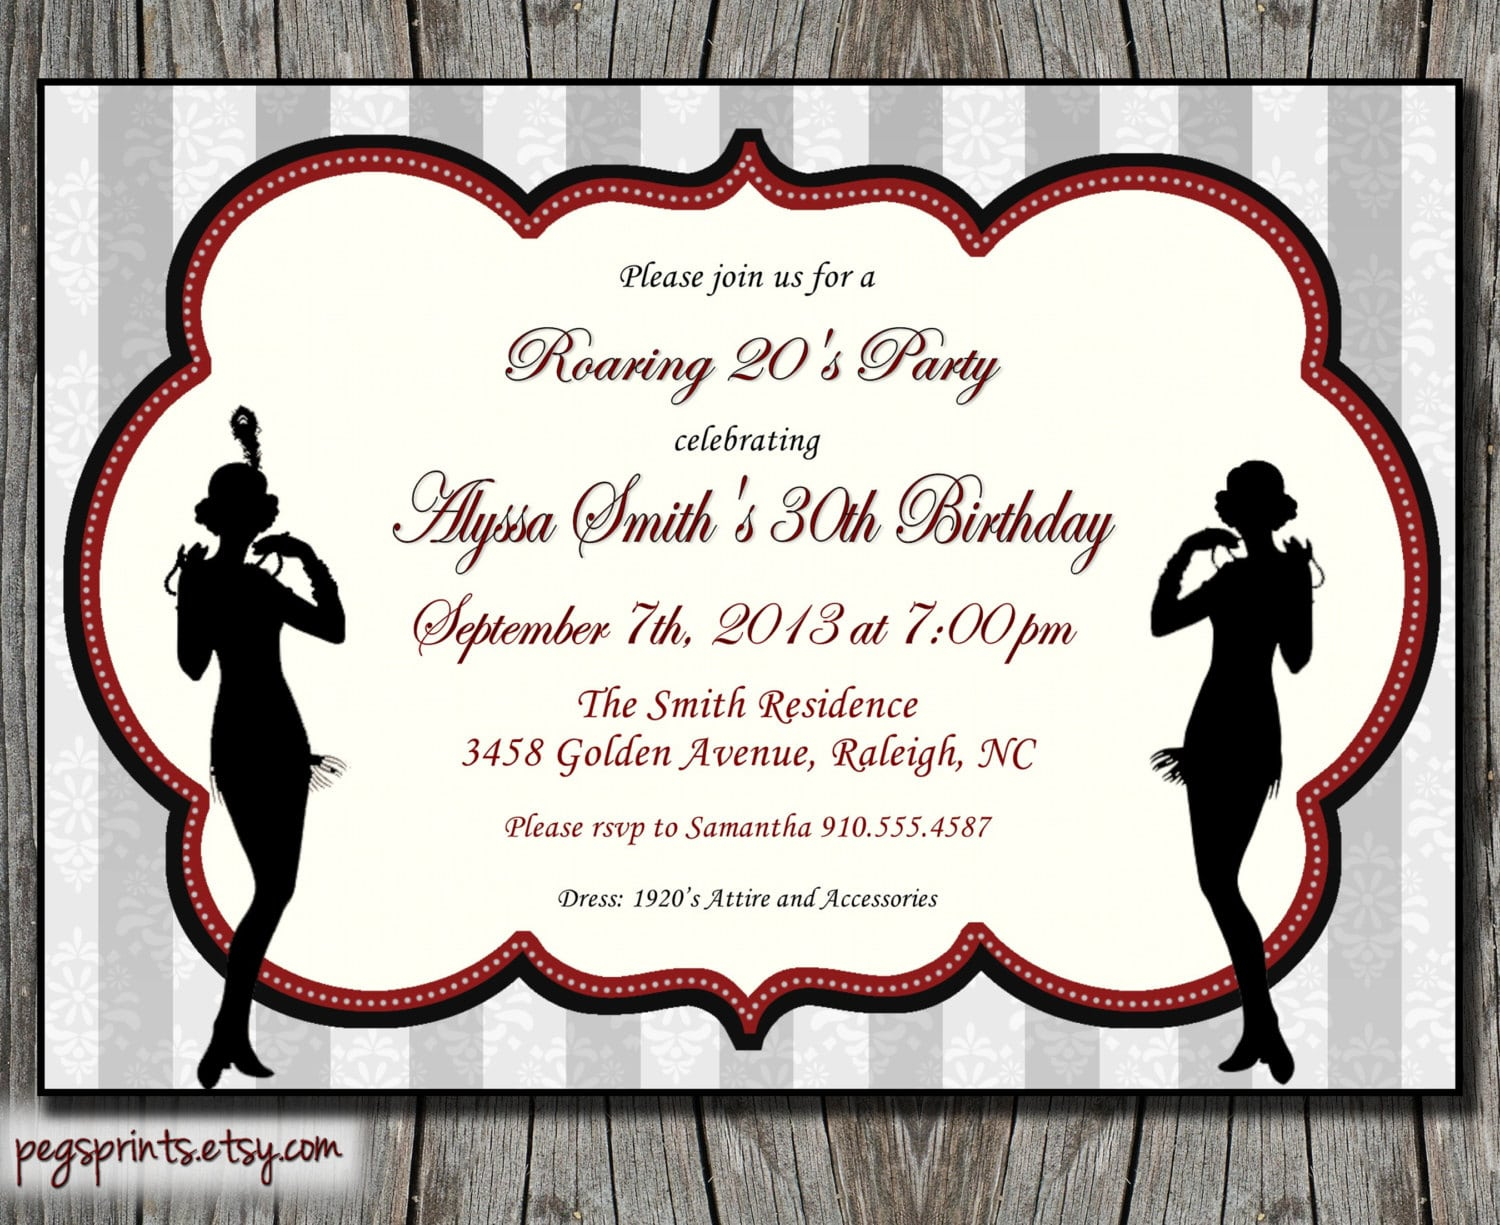 Roaring 20s Party Invitations - Mickey Mouse Invitations Templates